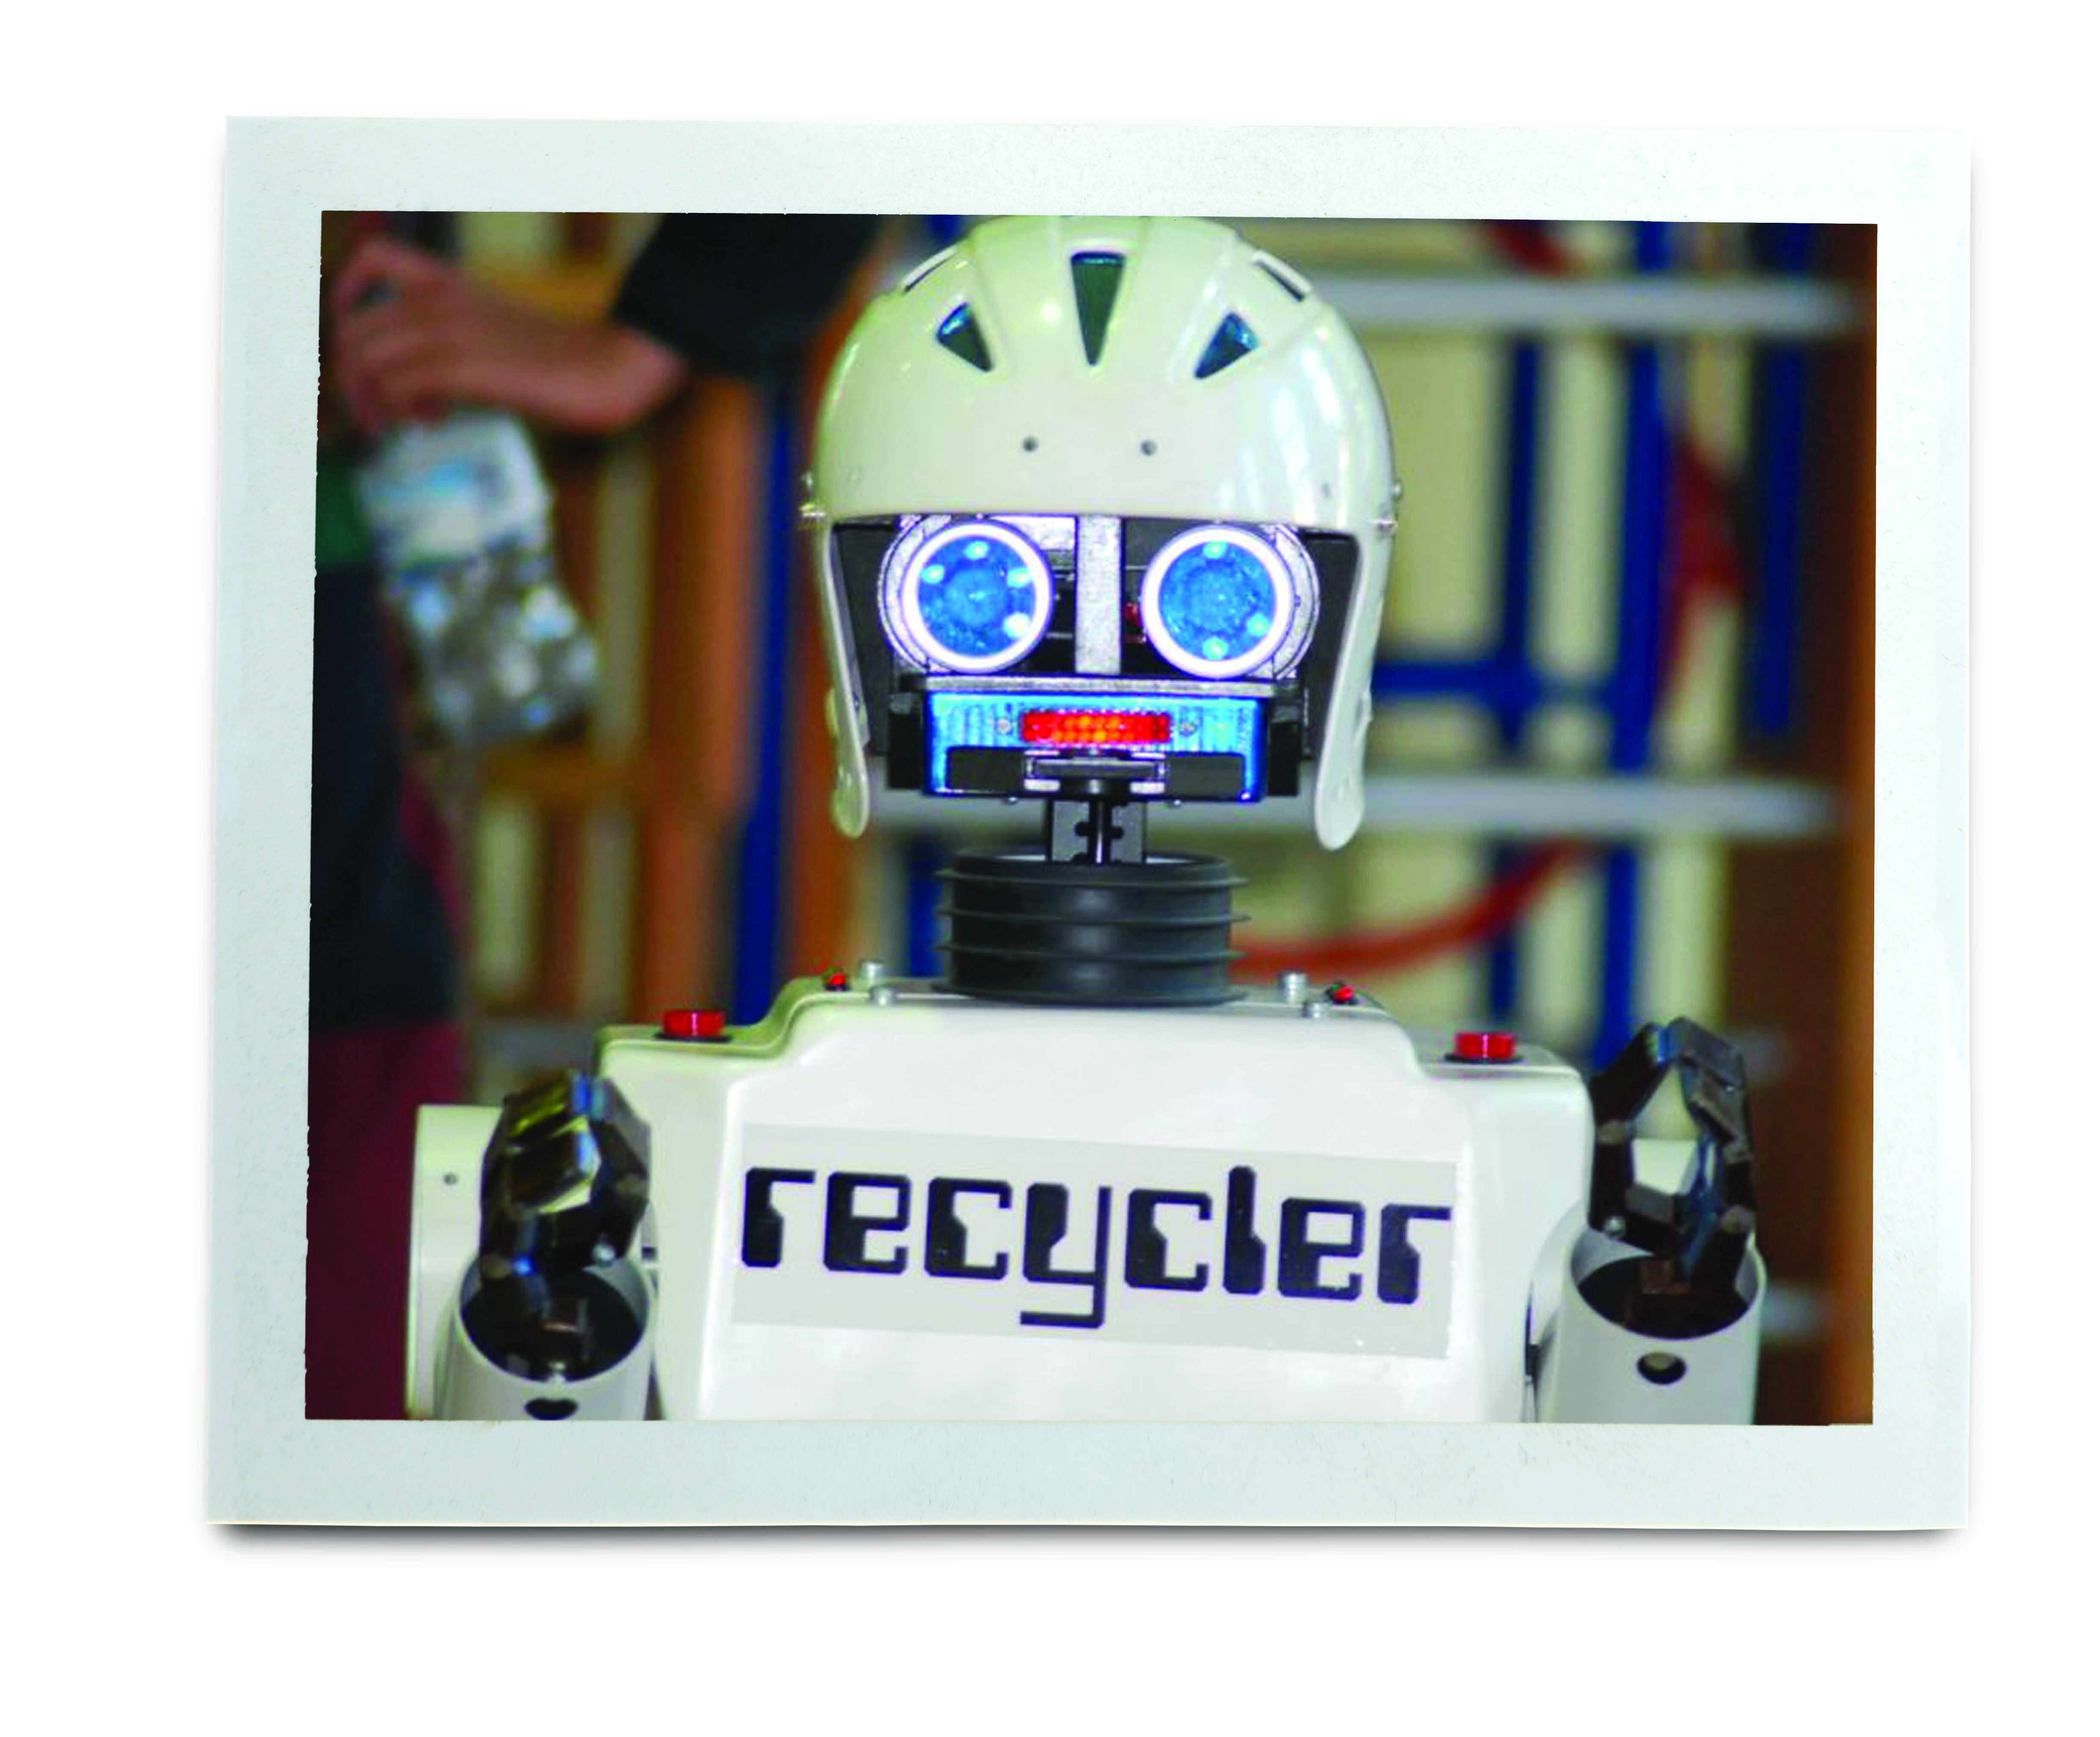 An image of a robot with 'recycler' on his front